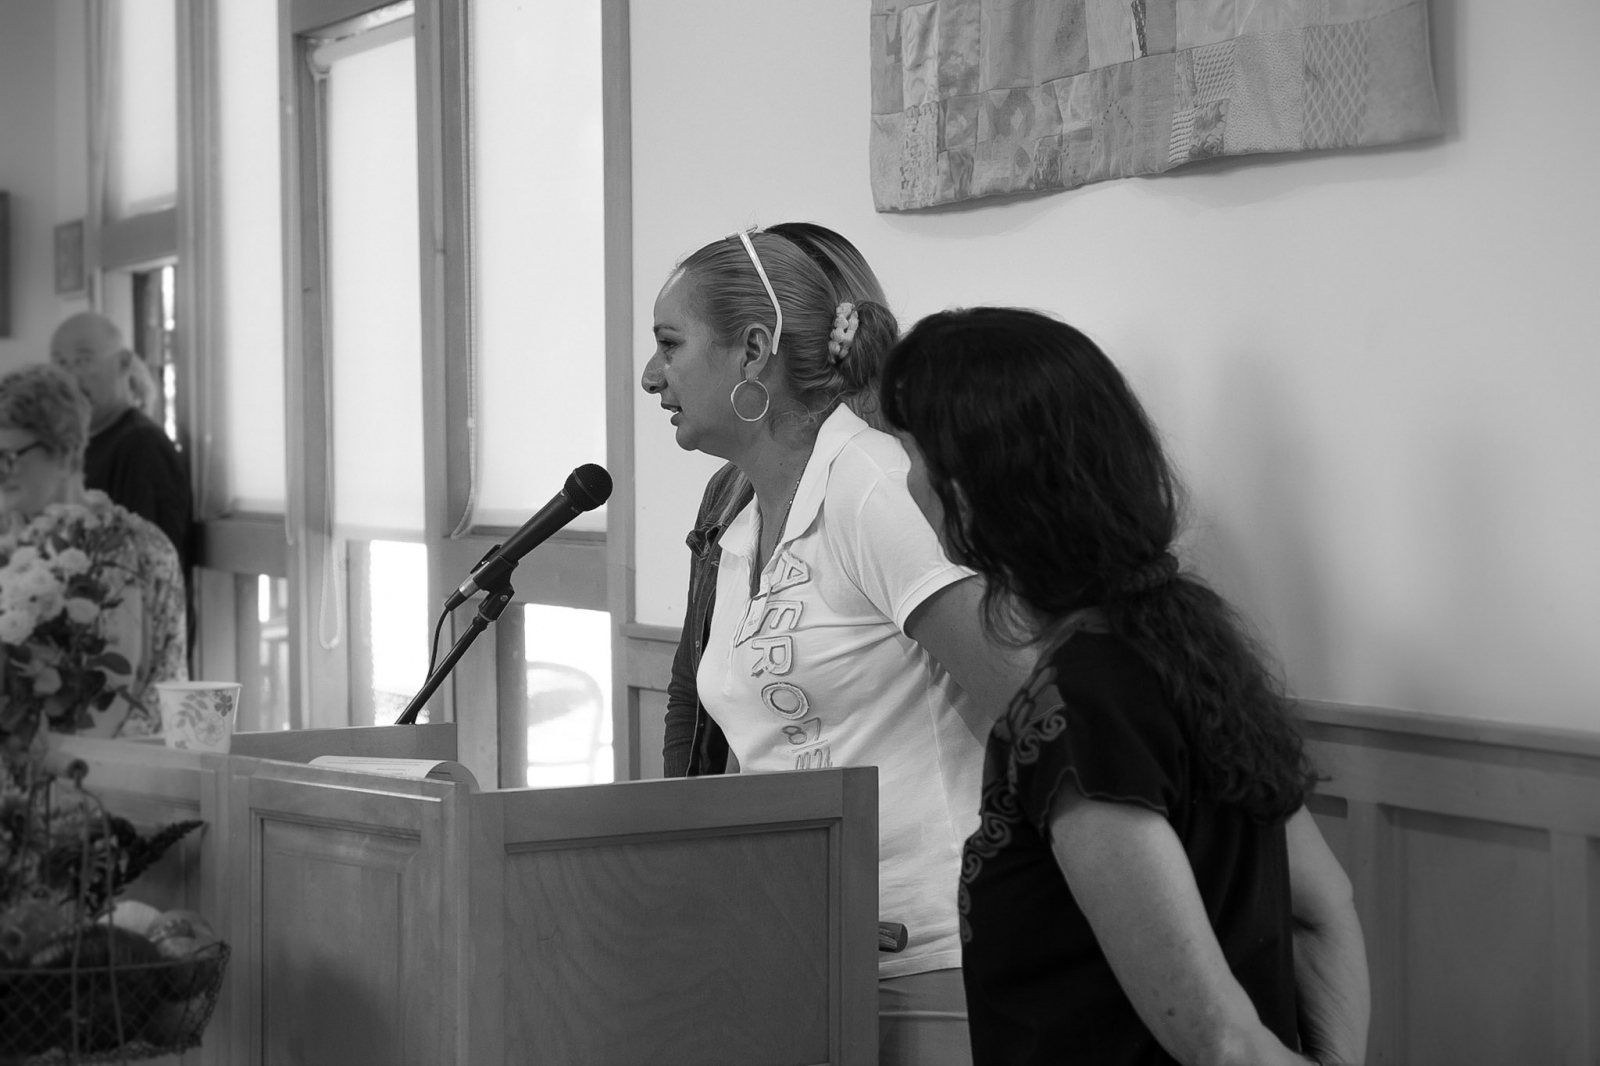 Aracel Fernandez speaks to a group of supporters while Dr. Ann Lopes looks on. Unitarian Universalist Fellowship Of Santa Cruz County, September 10th, 2017 Watsonville CA.